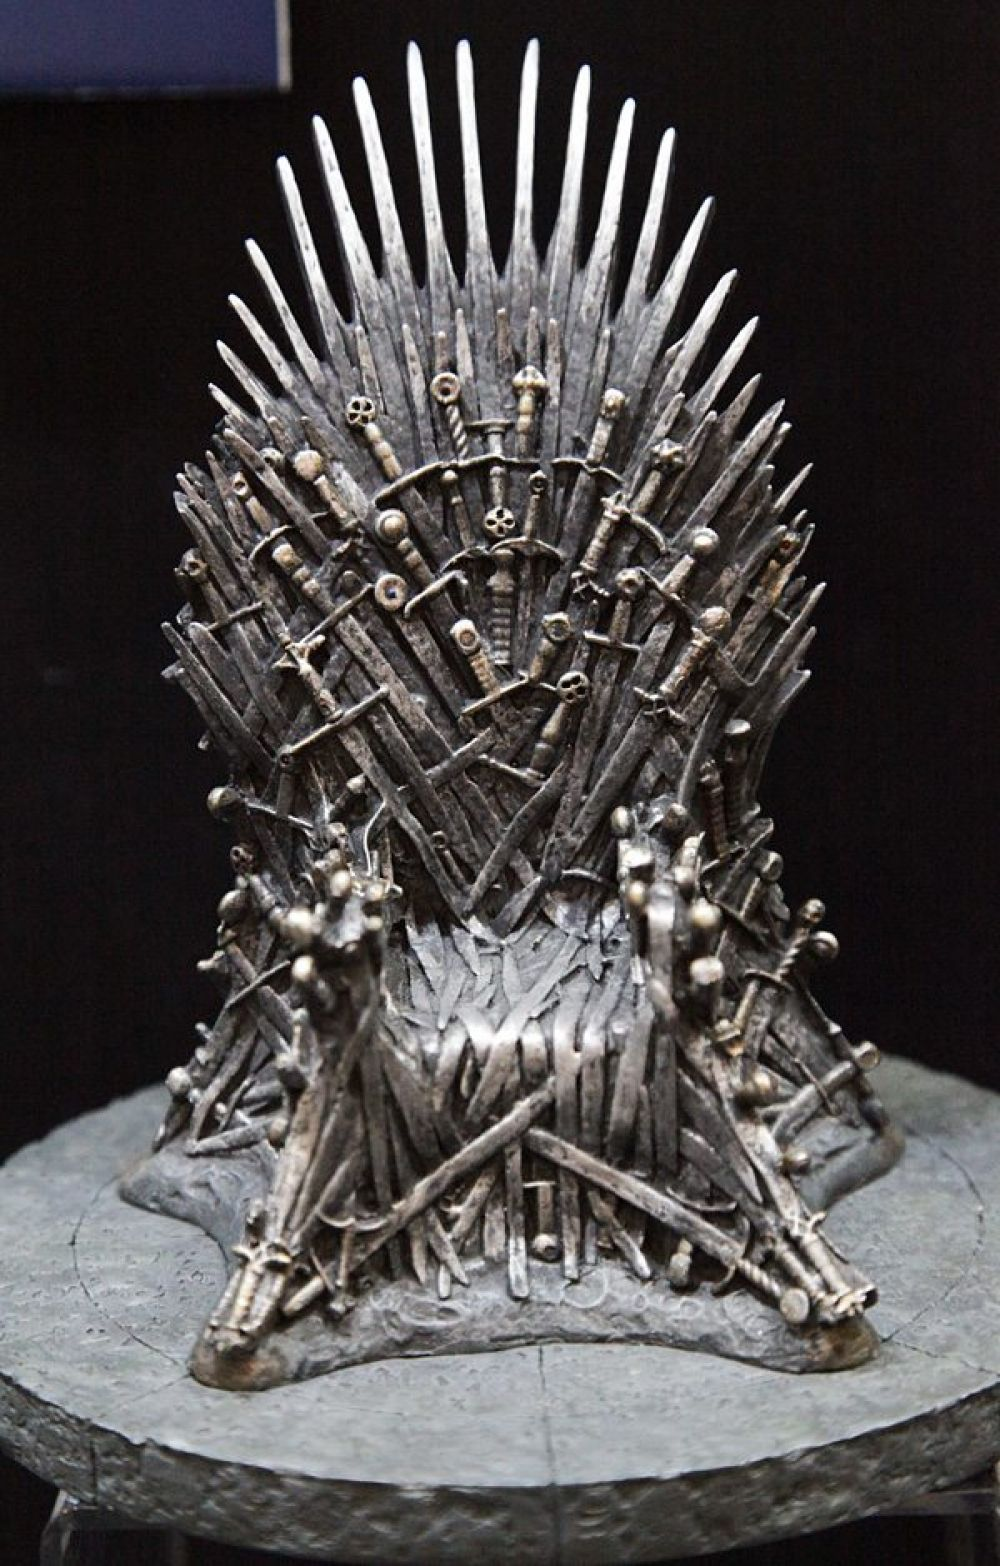 Game of thrones throne model free shipping worldwide in